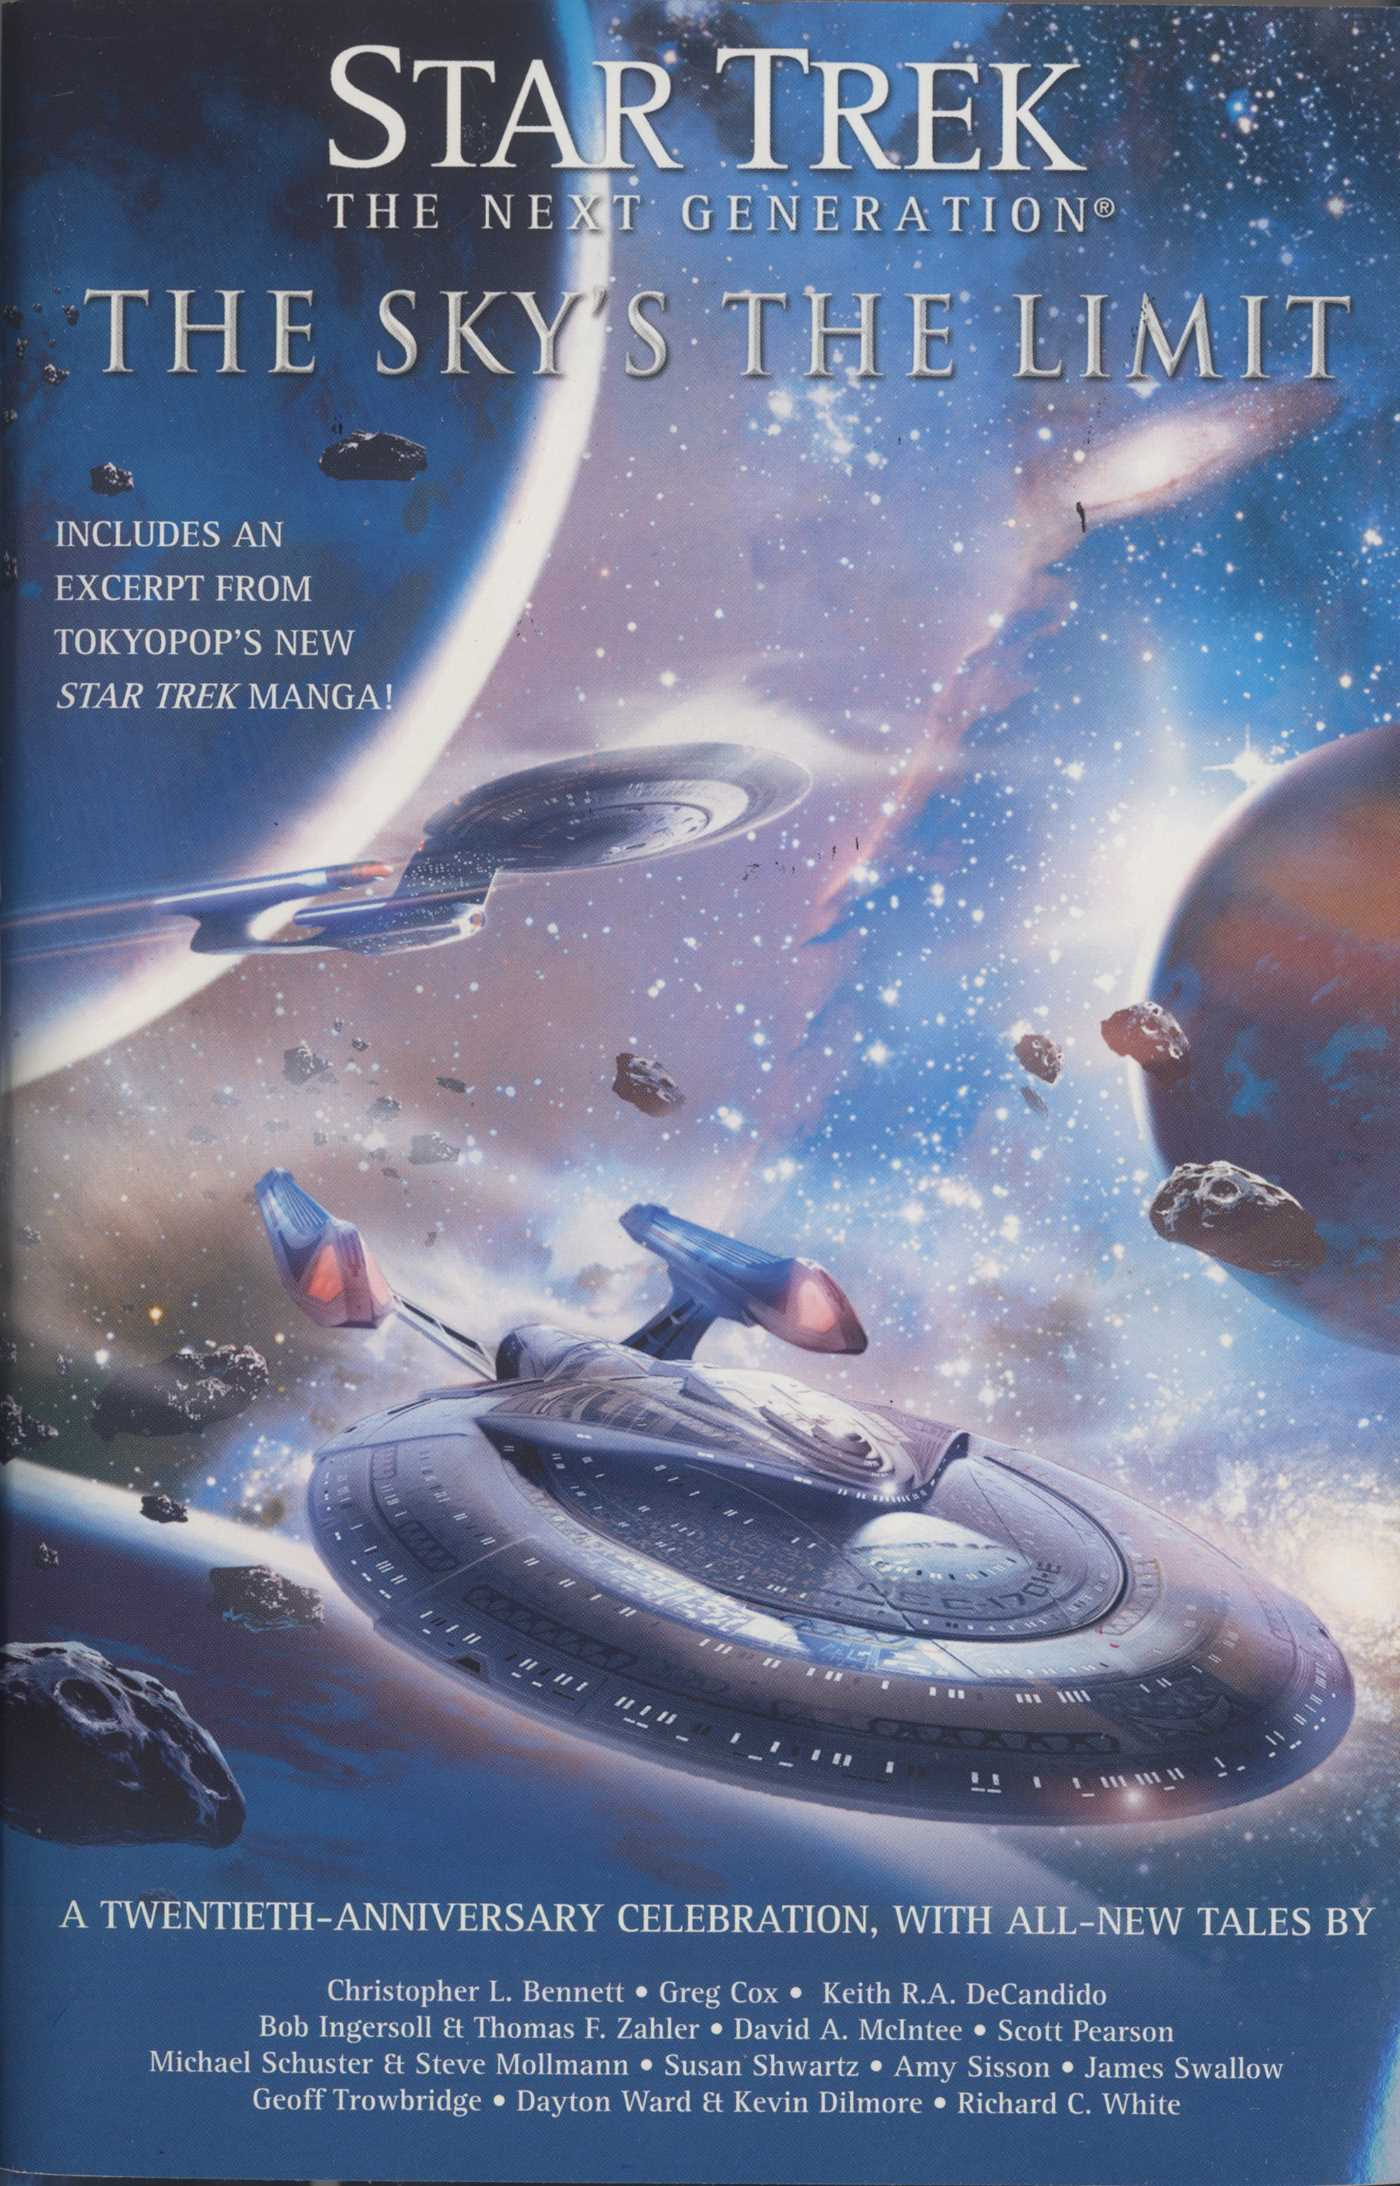 Star trek the next generation the skys the limit 9781416554707 hr